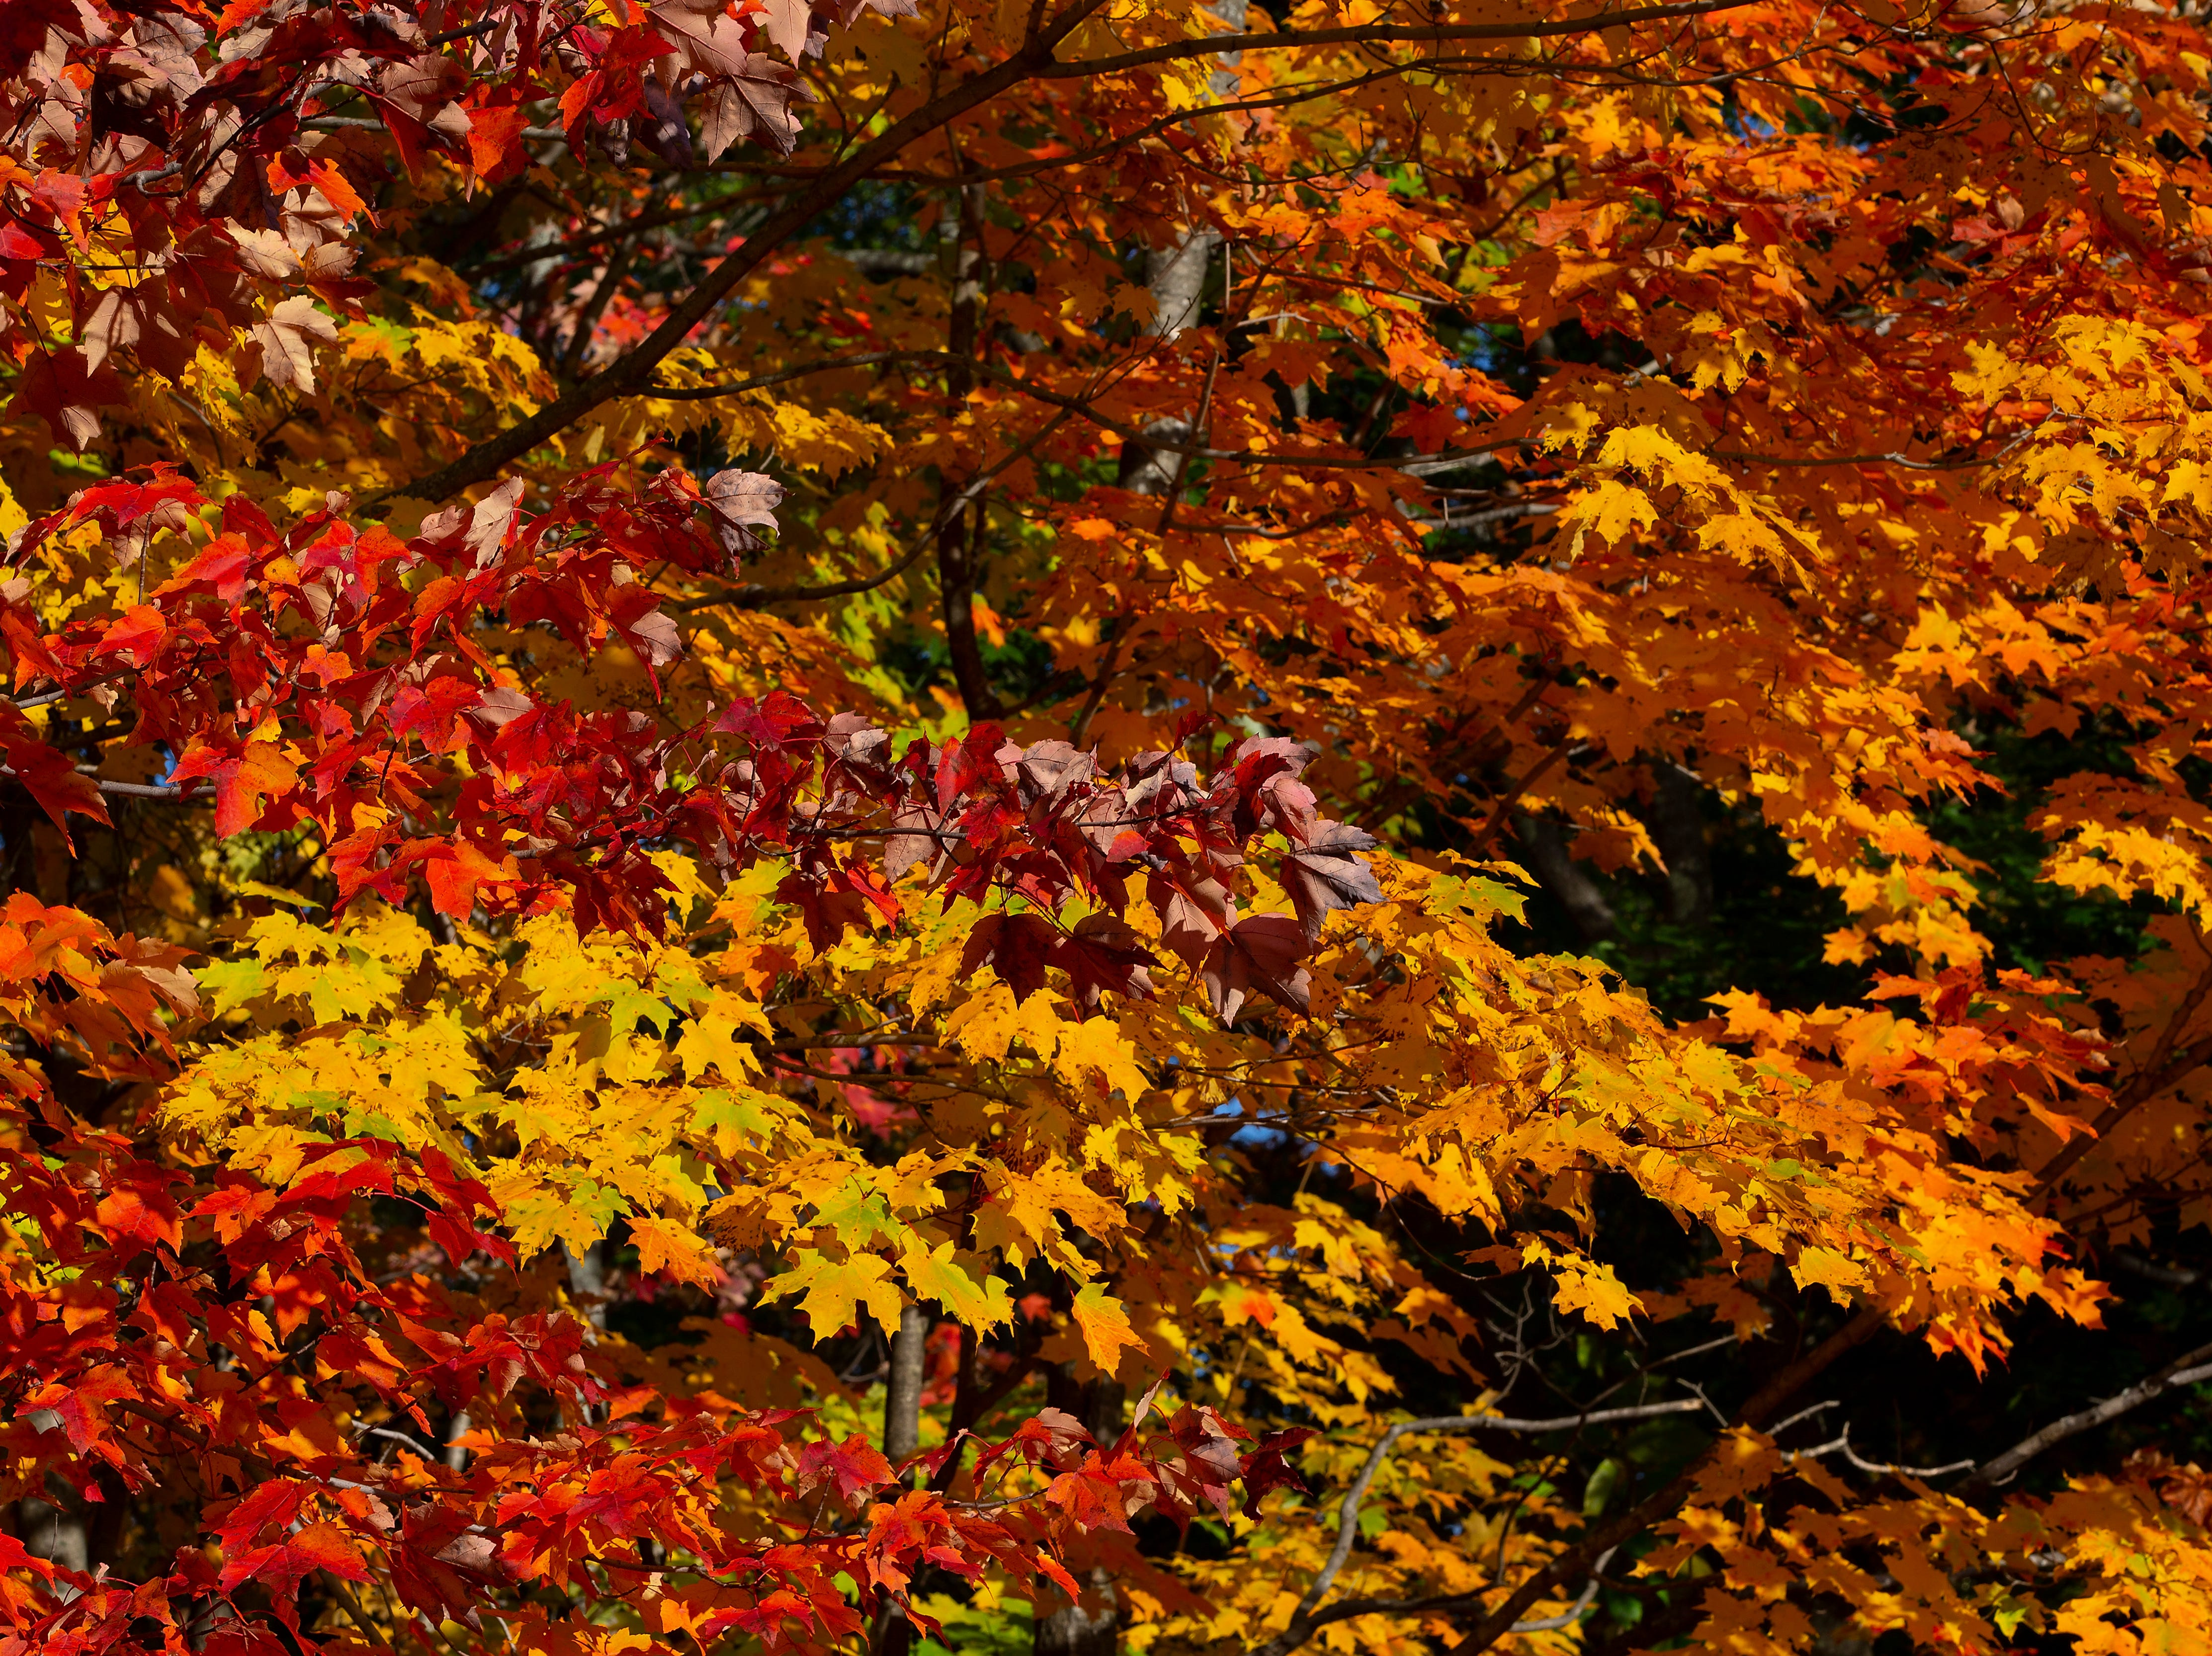 Leaves of various colors on the trees in Harts Location, N.H. on Oct. 10, 2018.